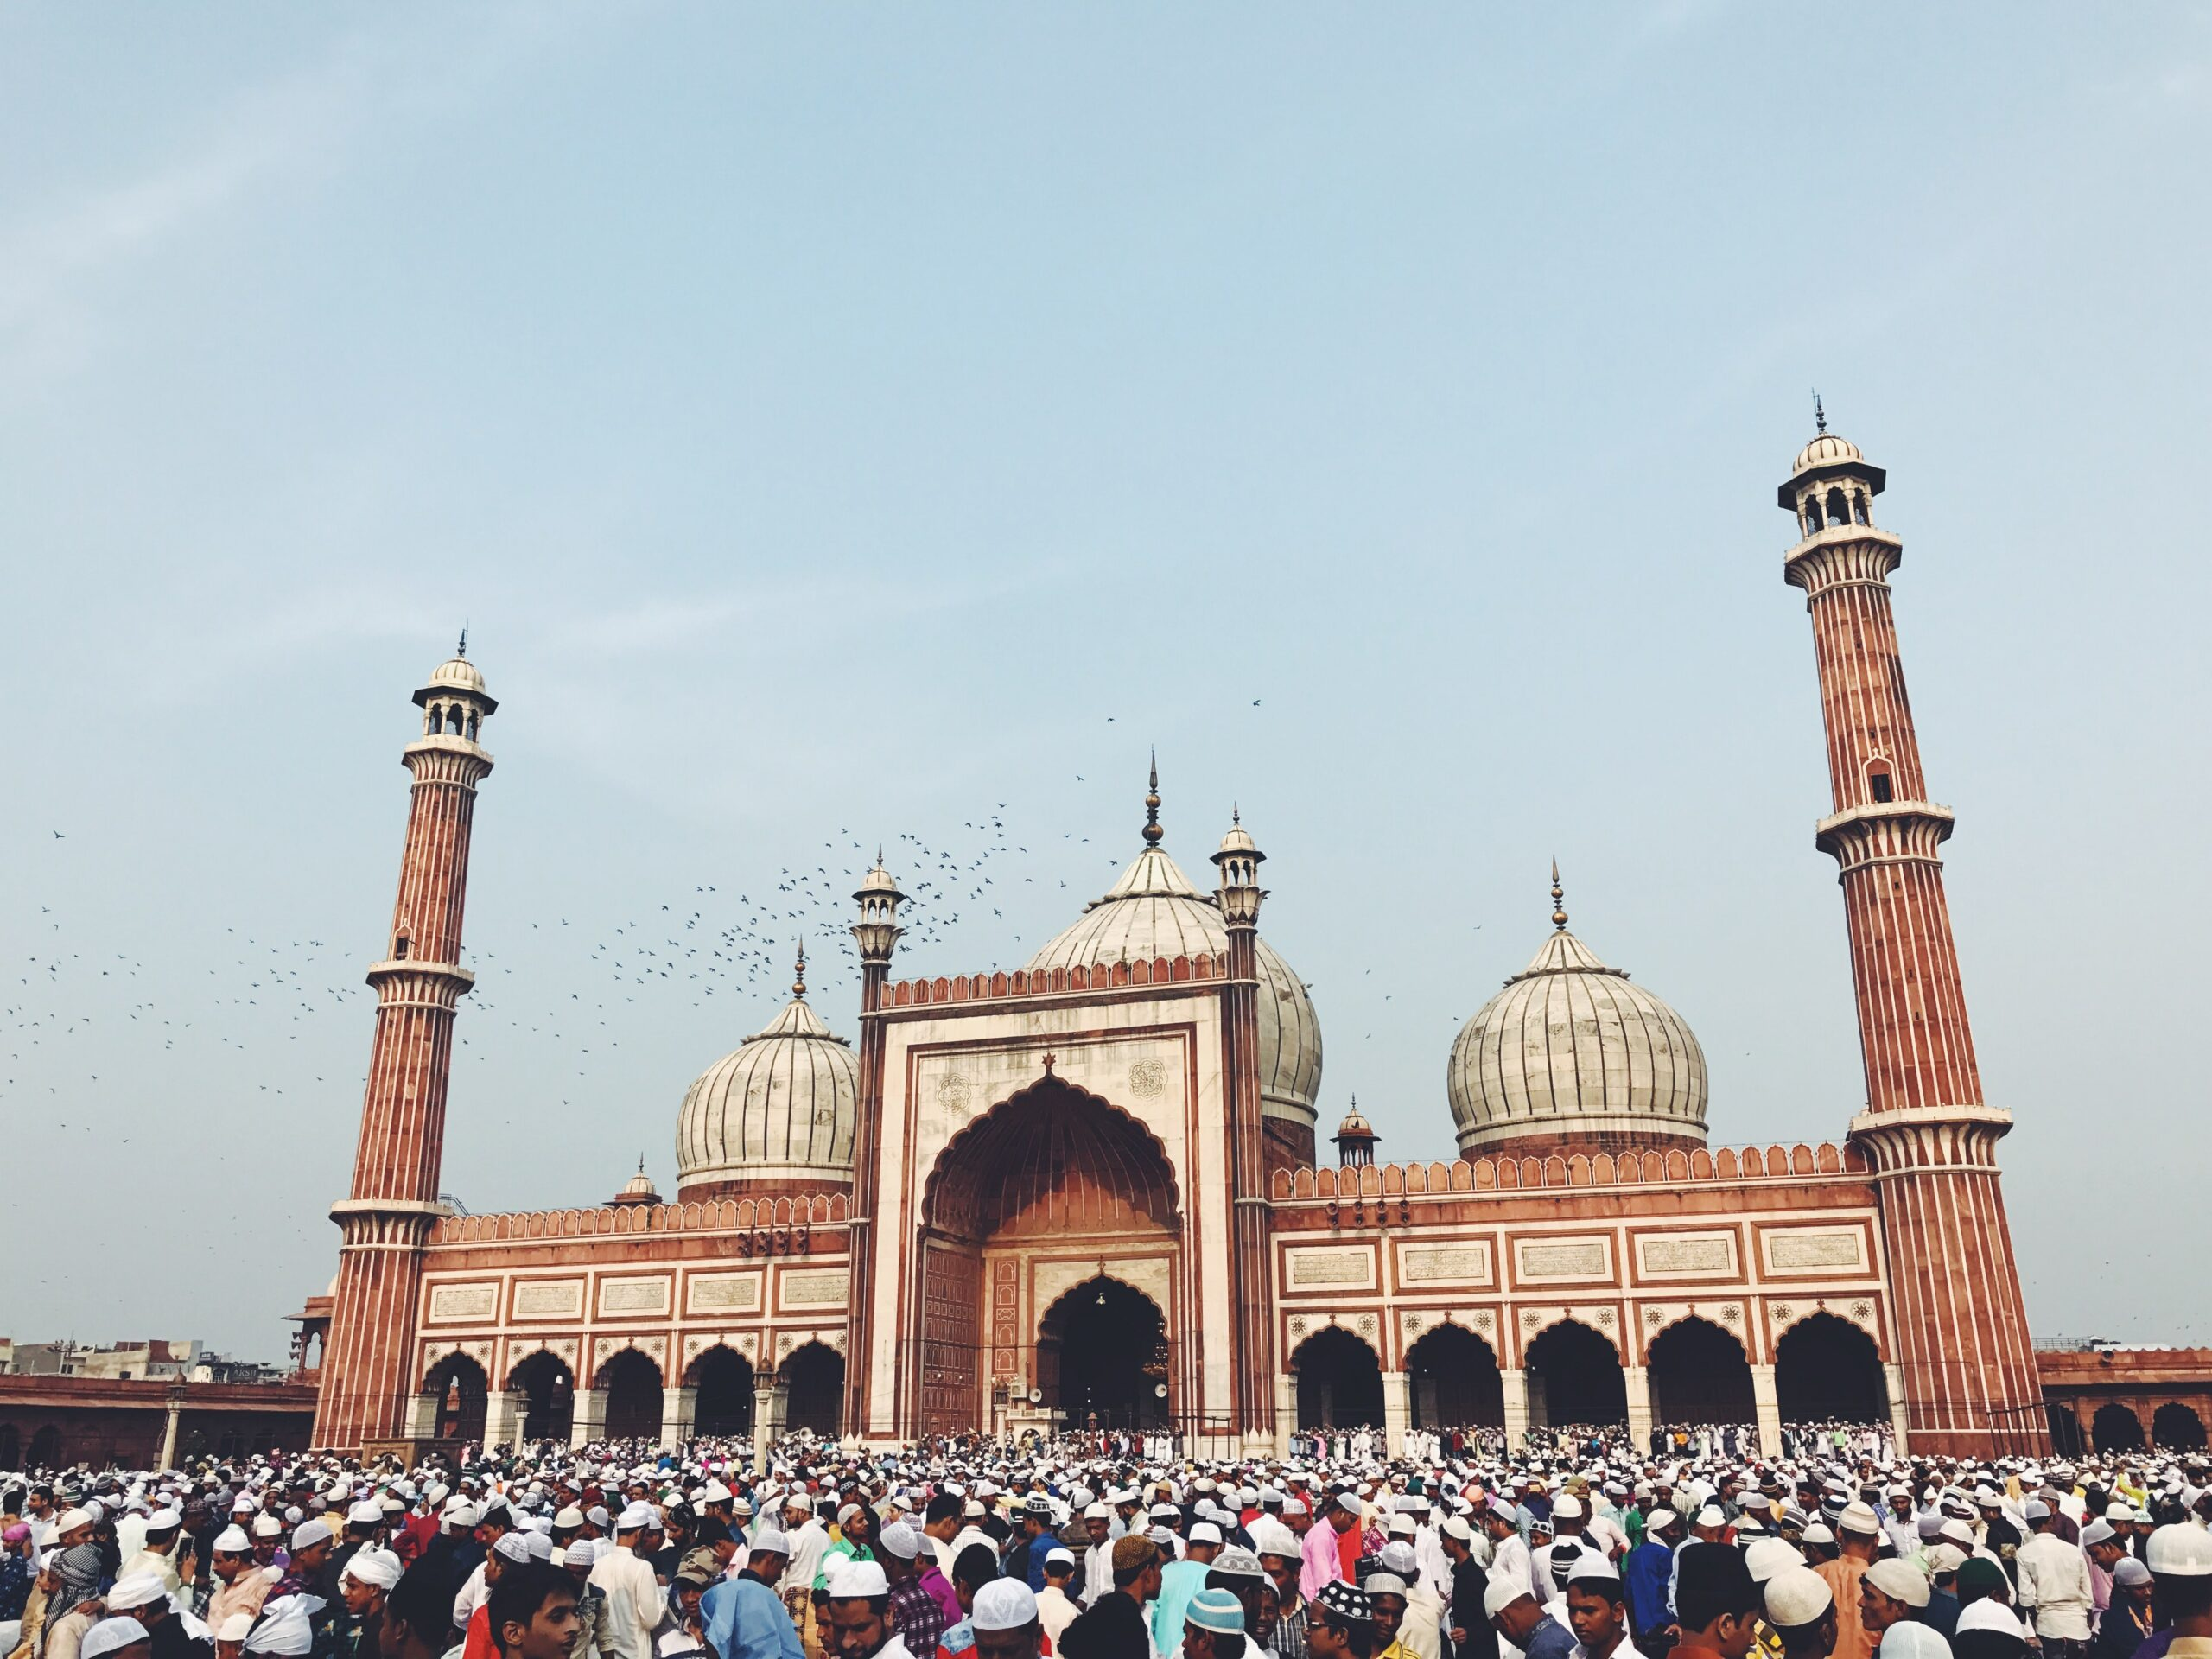 A picture of Jama Masjid in Chandni Chowk, Delhi which was designed and commissioned by Princess Jahanara.